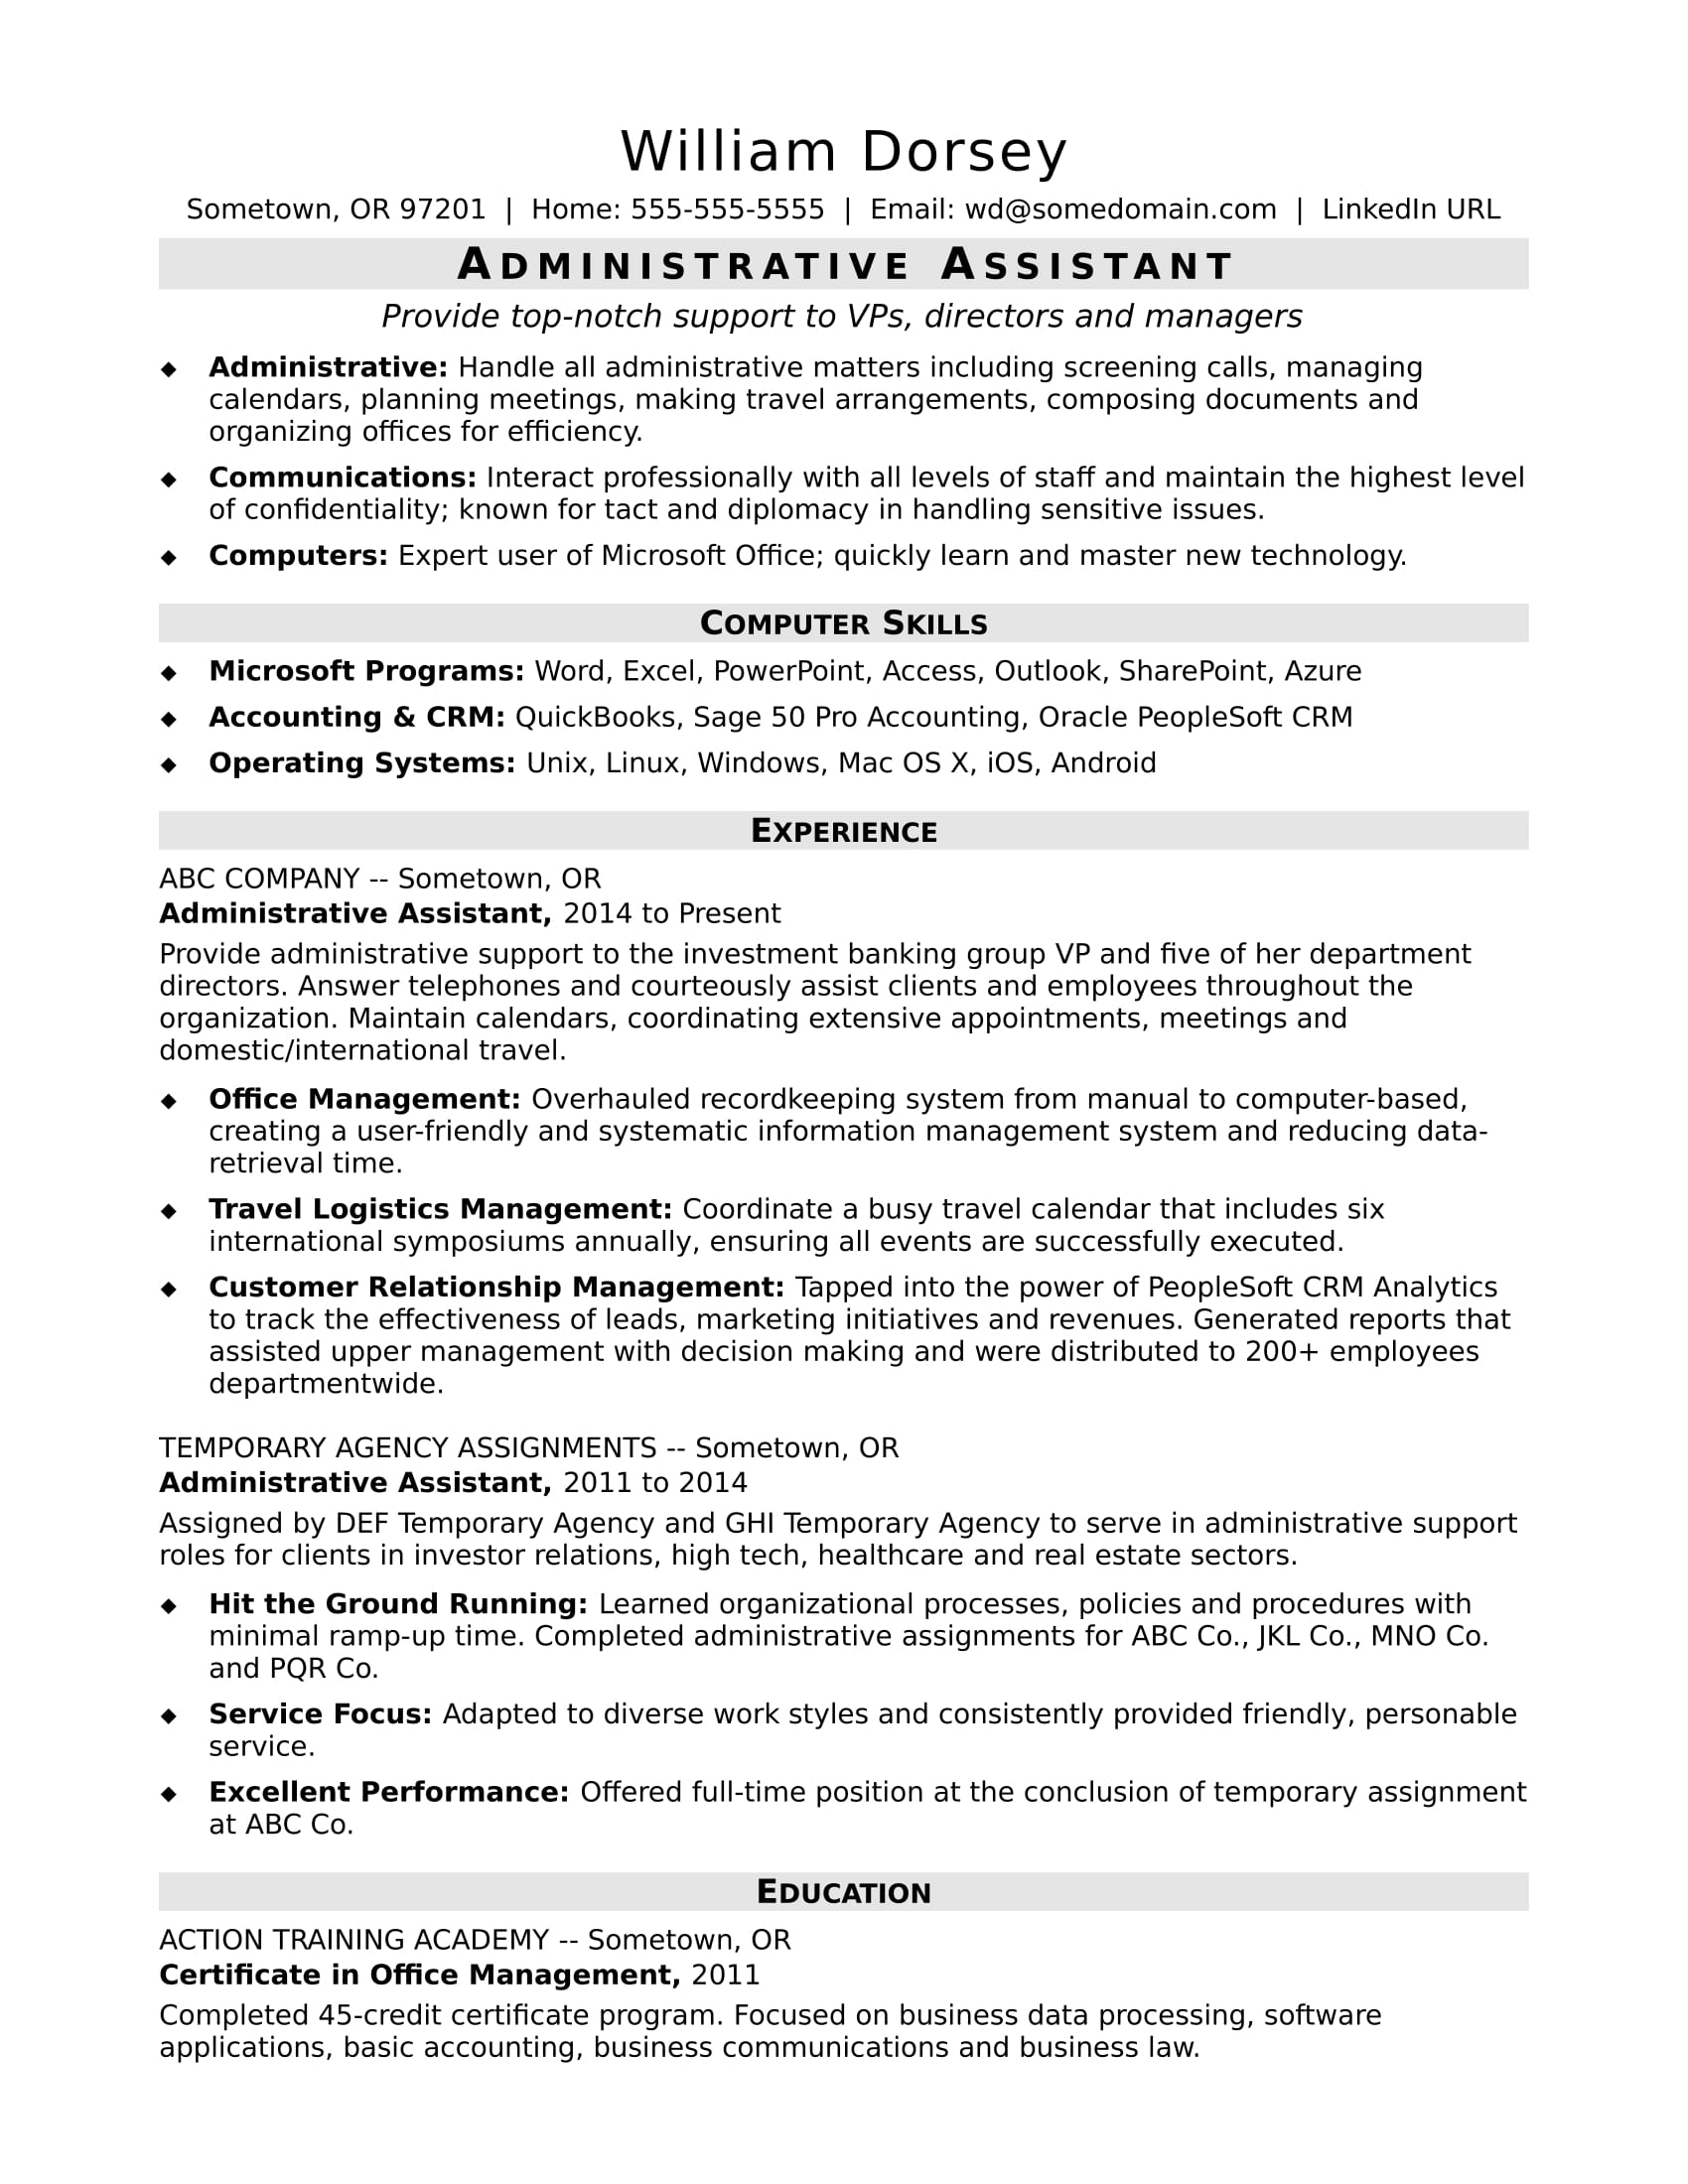 Midlevel administrative assistant resume sample monster sample resume for a midlevel administrative assistant madrichimfo Images